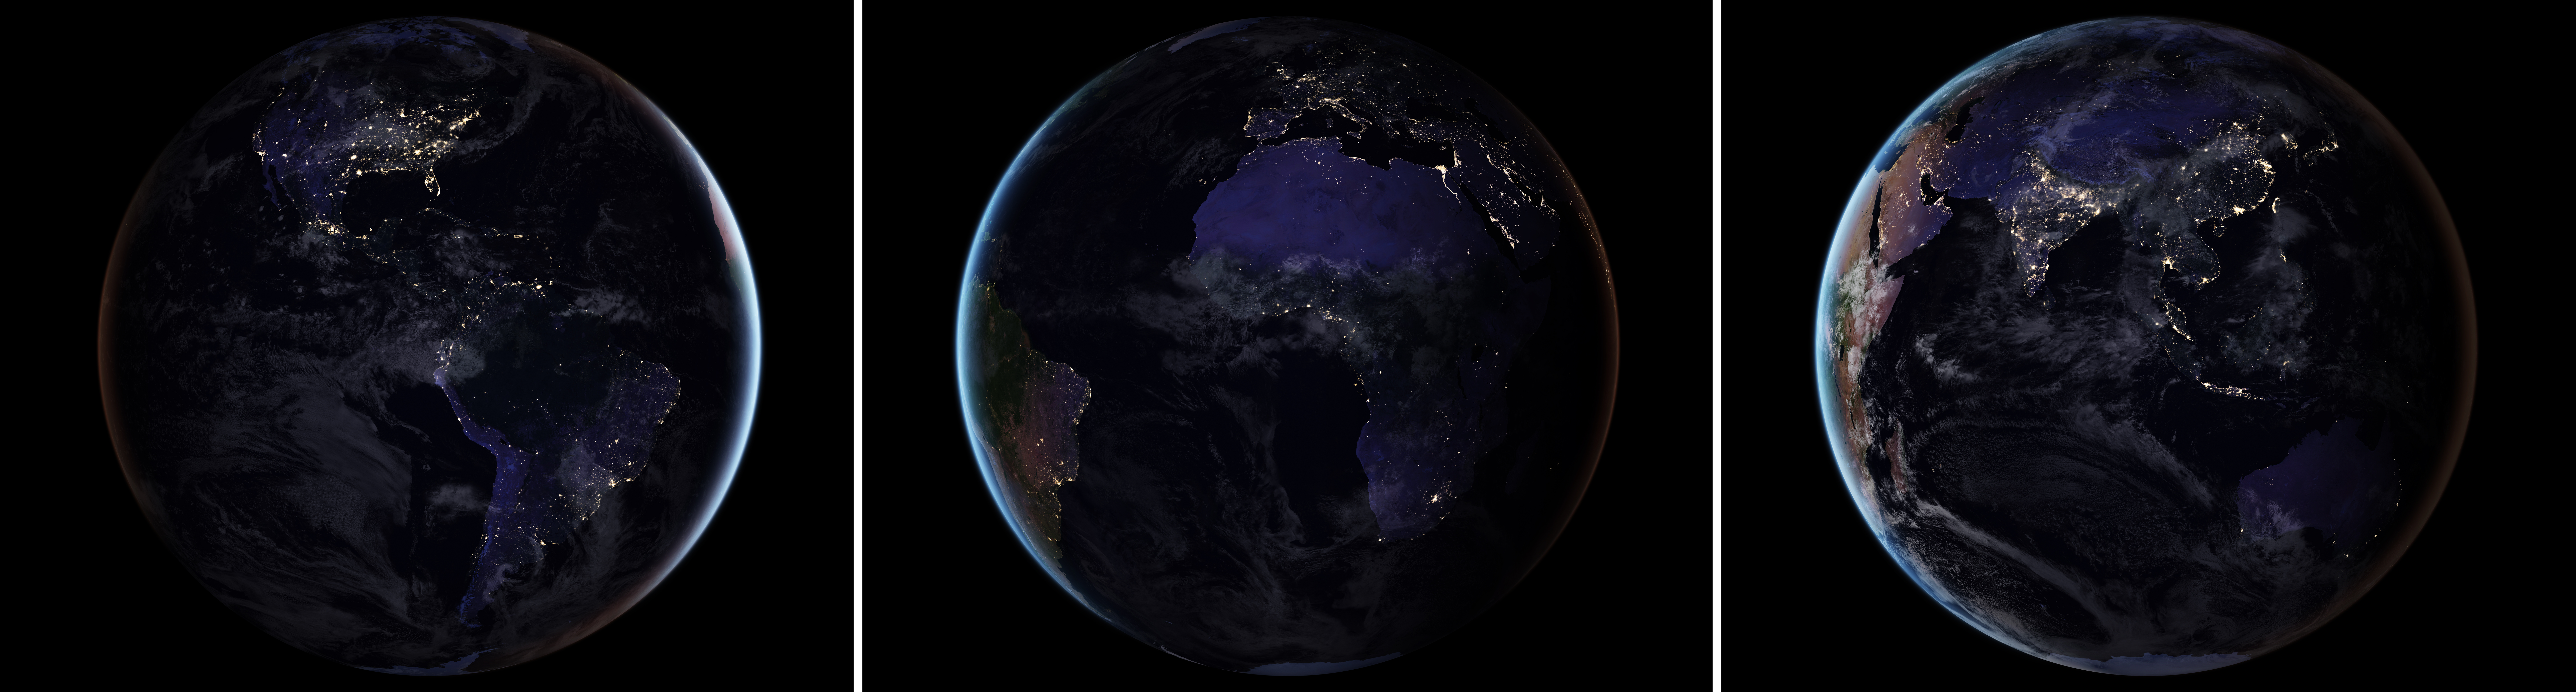 New night lights maps open up possible real time applications nasa triptych composite of earth at night 2016 l to r north and south gumiabroncs Gallery